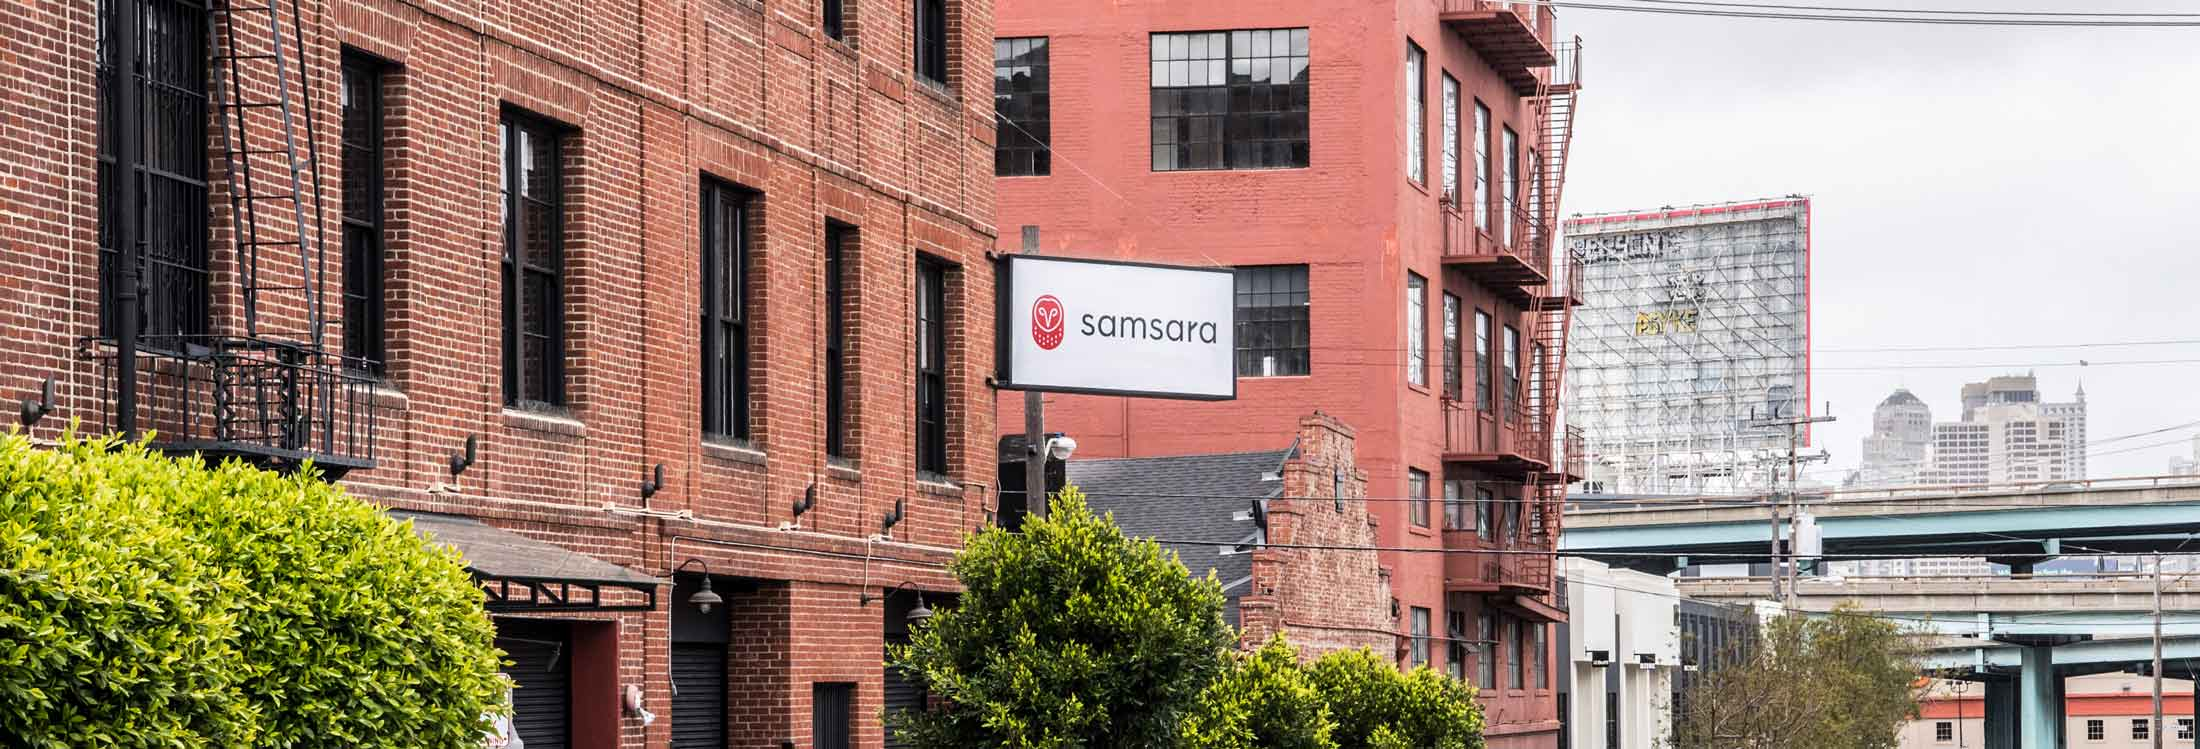 Samsara Raises $40M in Series C Growth Financing